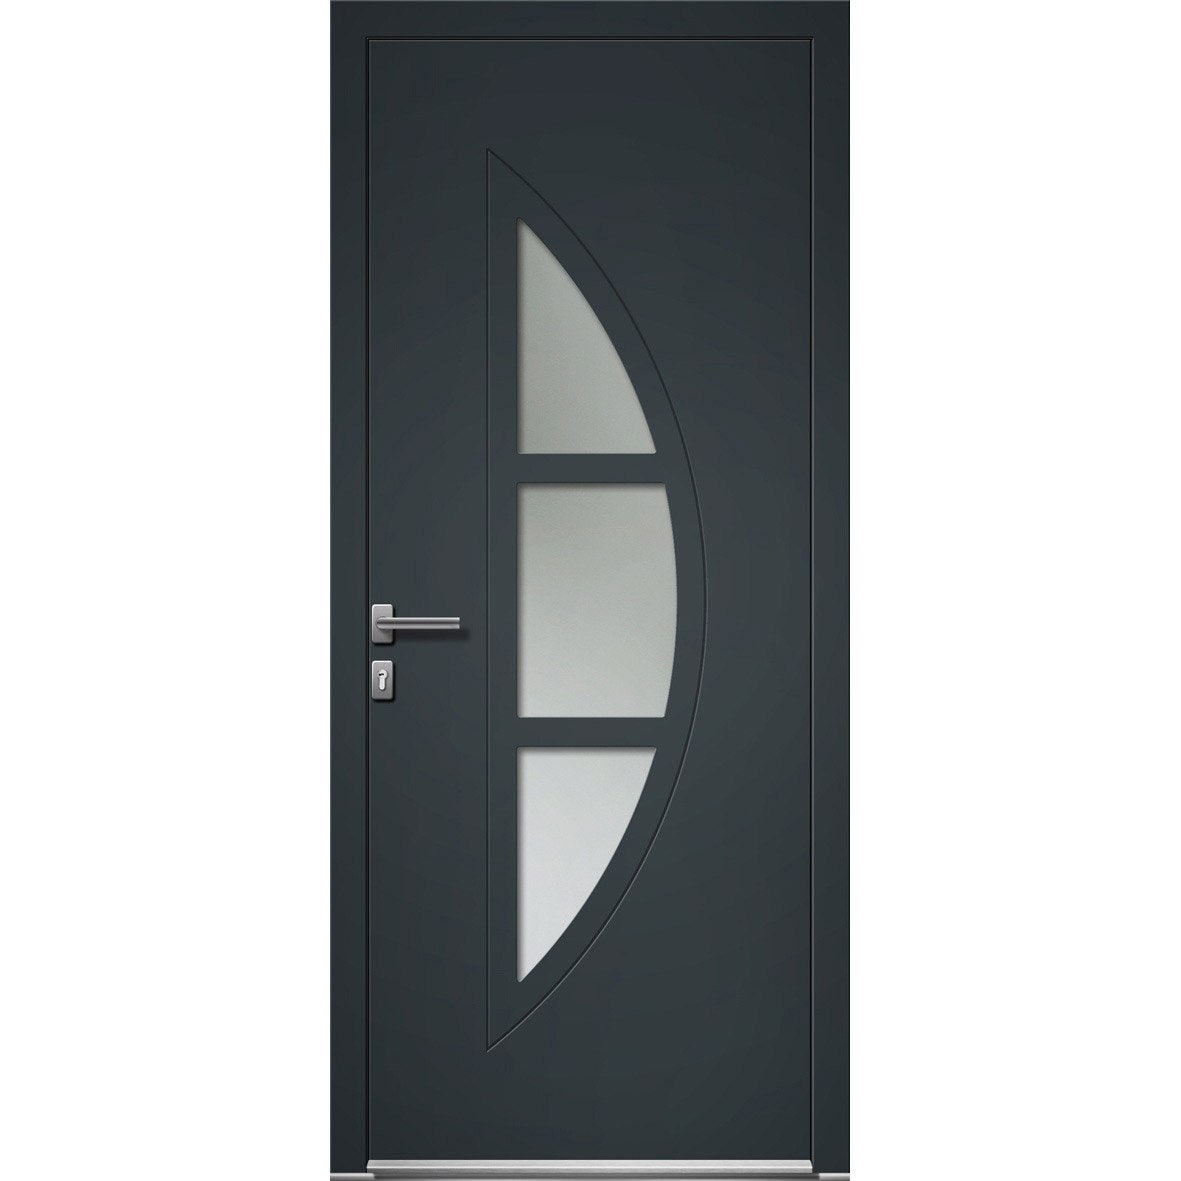 porte d 39 entr e sur mesure en aluminium omaha excellence leroy merlin. Black Bedroom Furniture Sets. Home Design Ideas